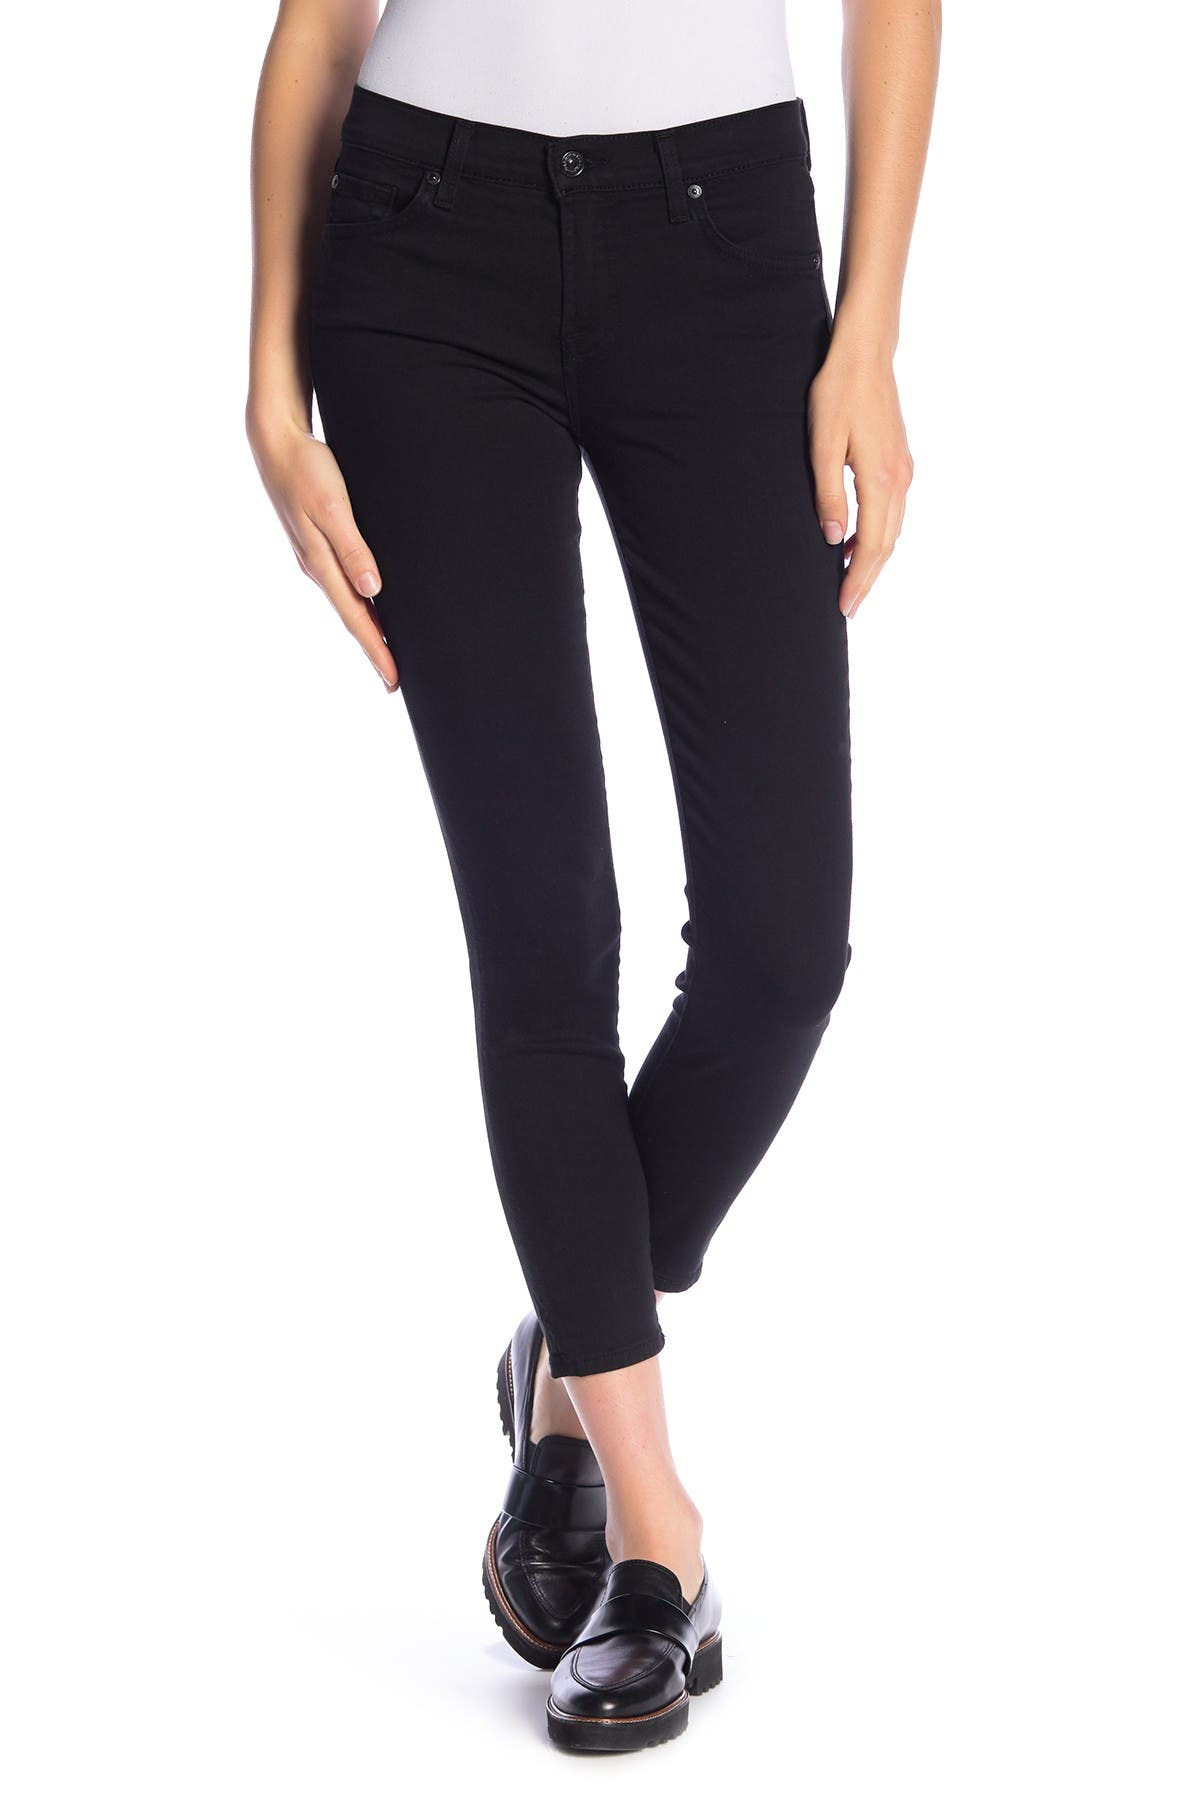 Image of 7 For All Mankind Ankle Gwenevere Jeans